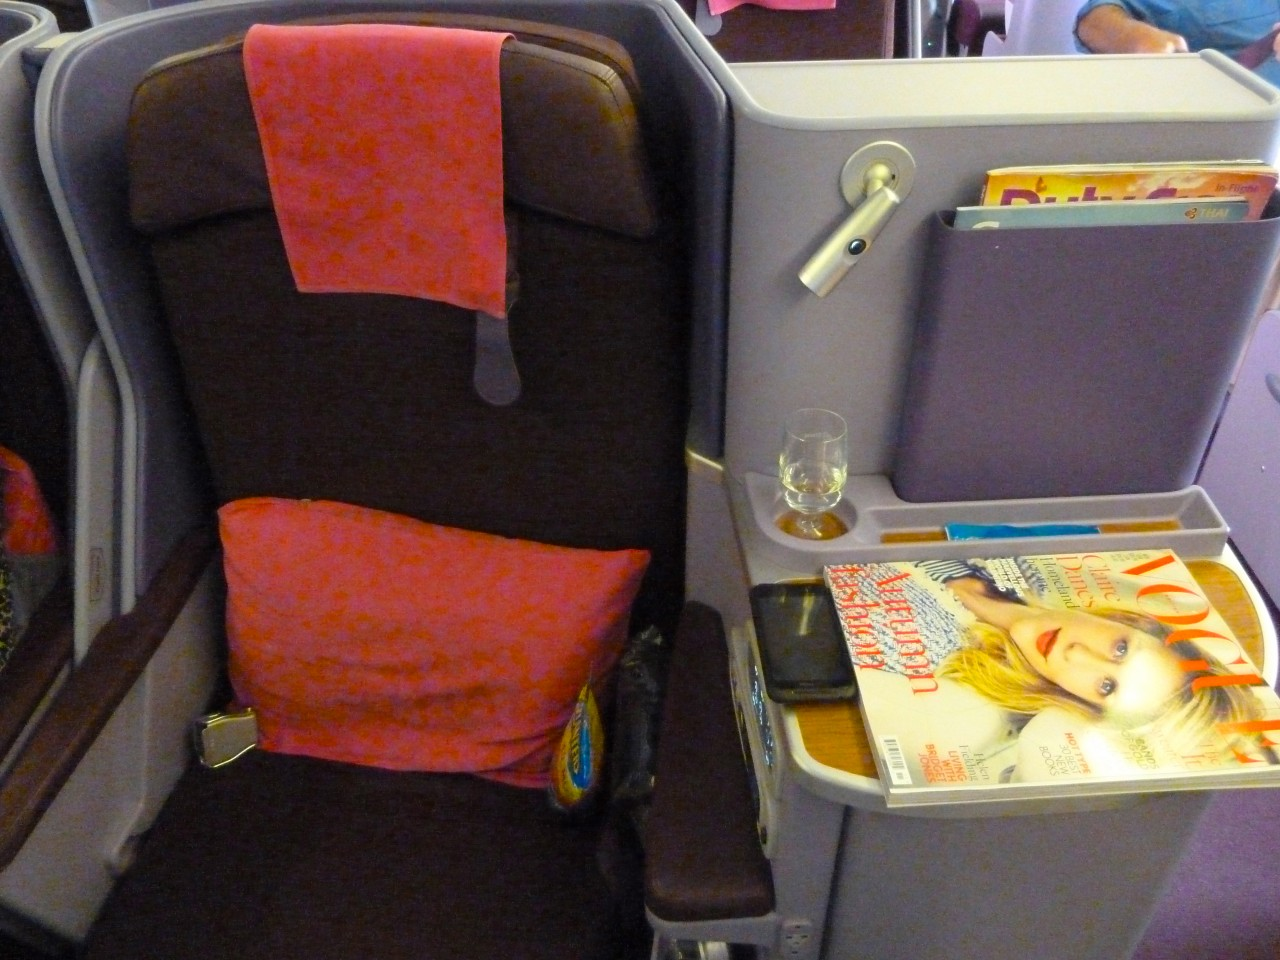 ThaiAirways Business Class Seat